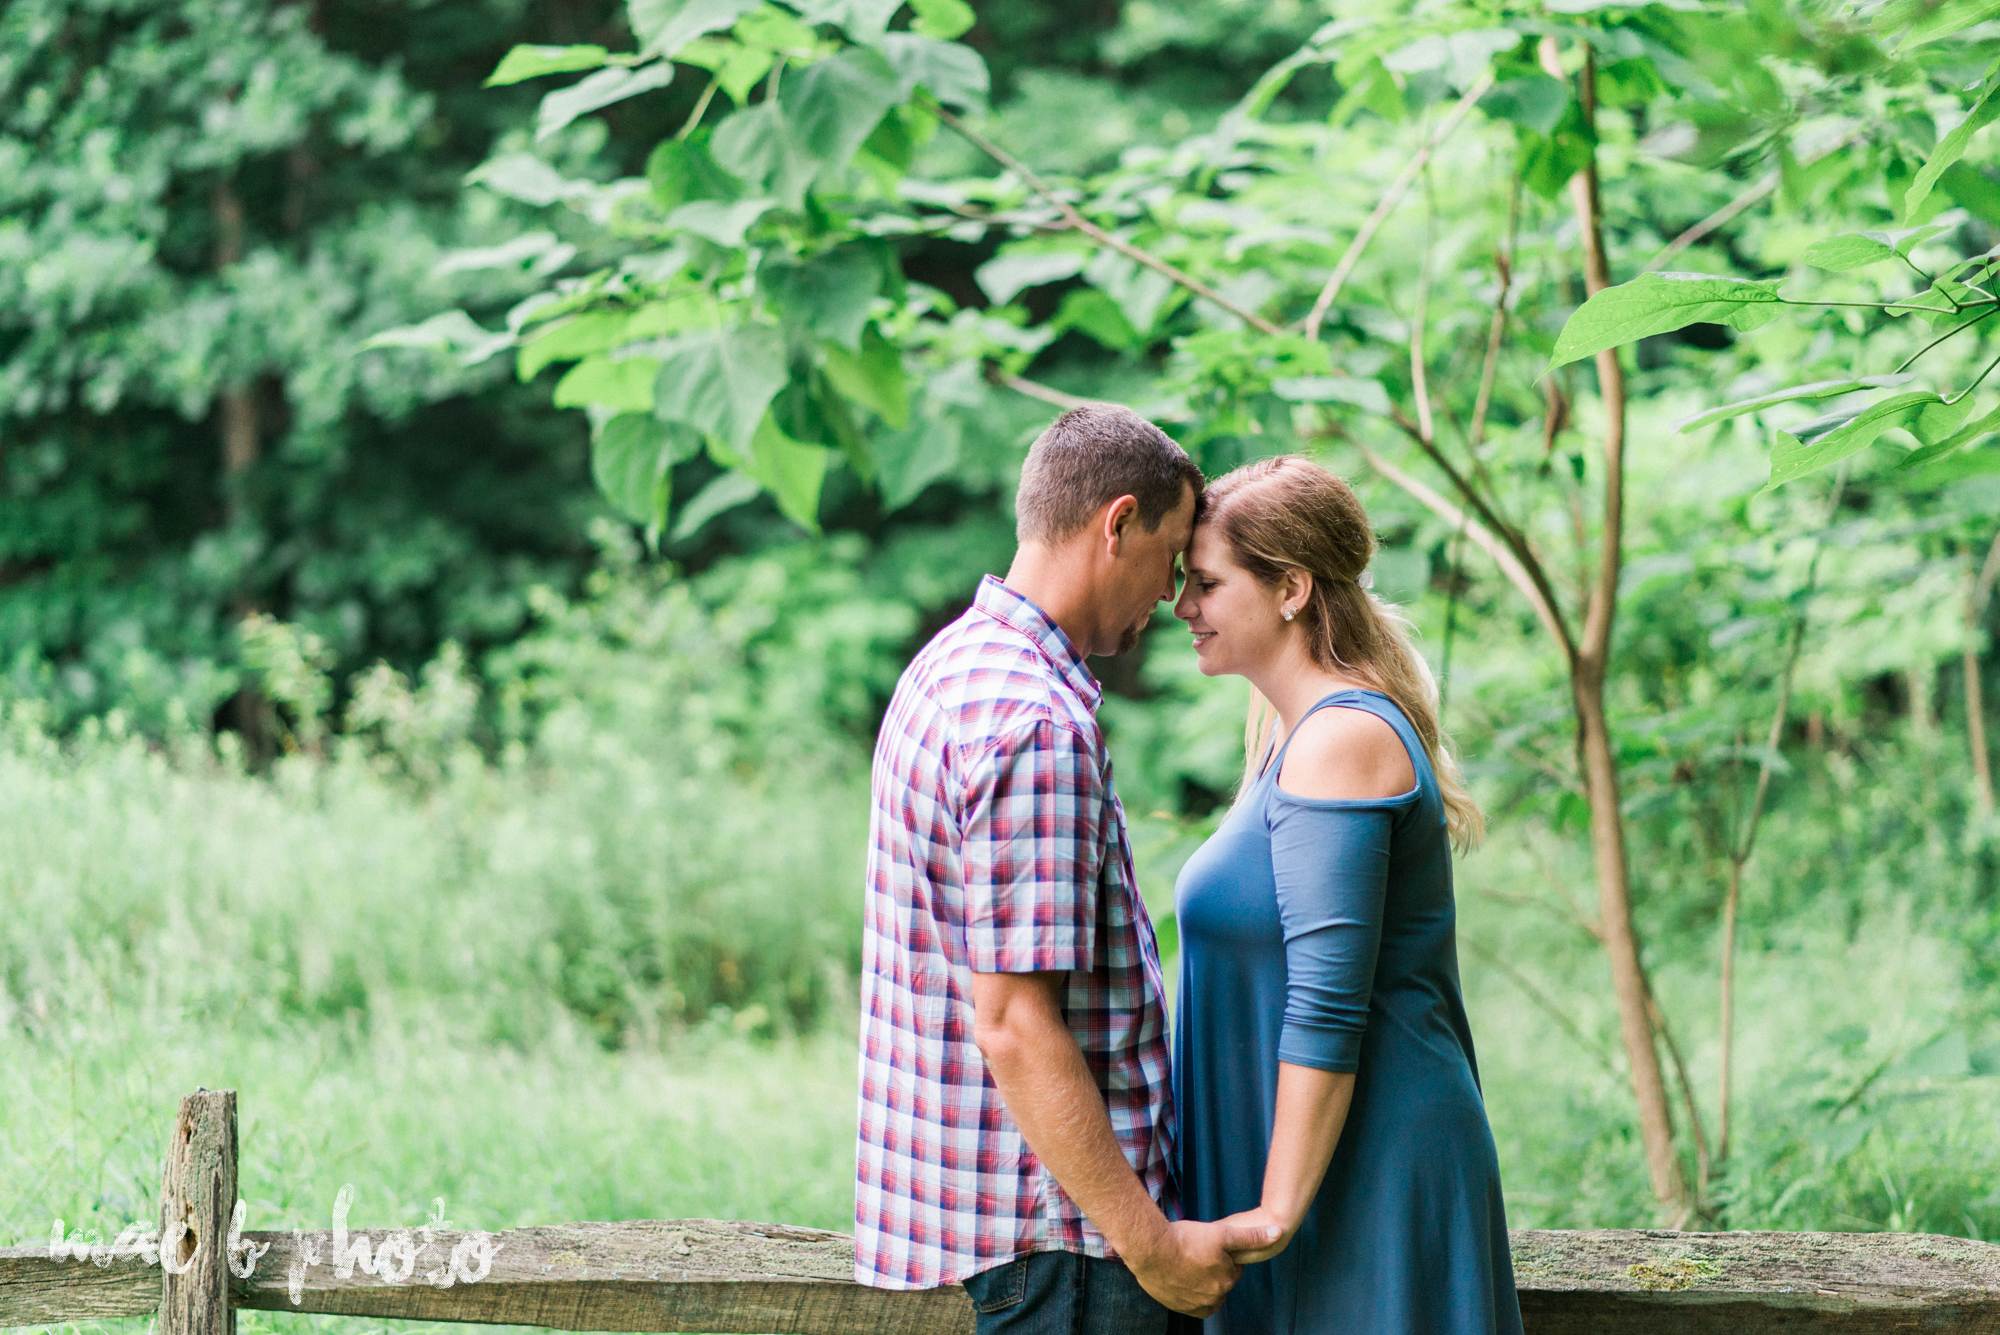 becca and rich's woodsy summer engagement session at ford nature center in mill creek park in youngstown ohio photographed by cleveland wedding photographer mae b photo-41.jpg